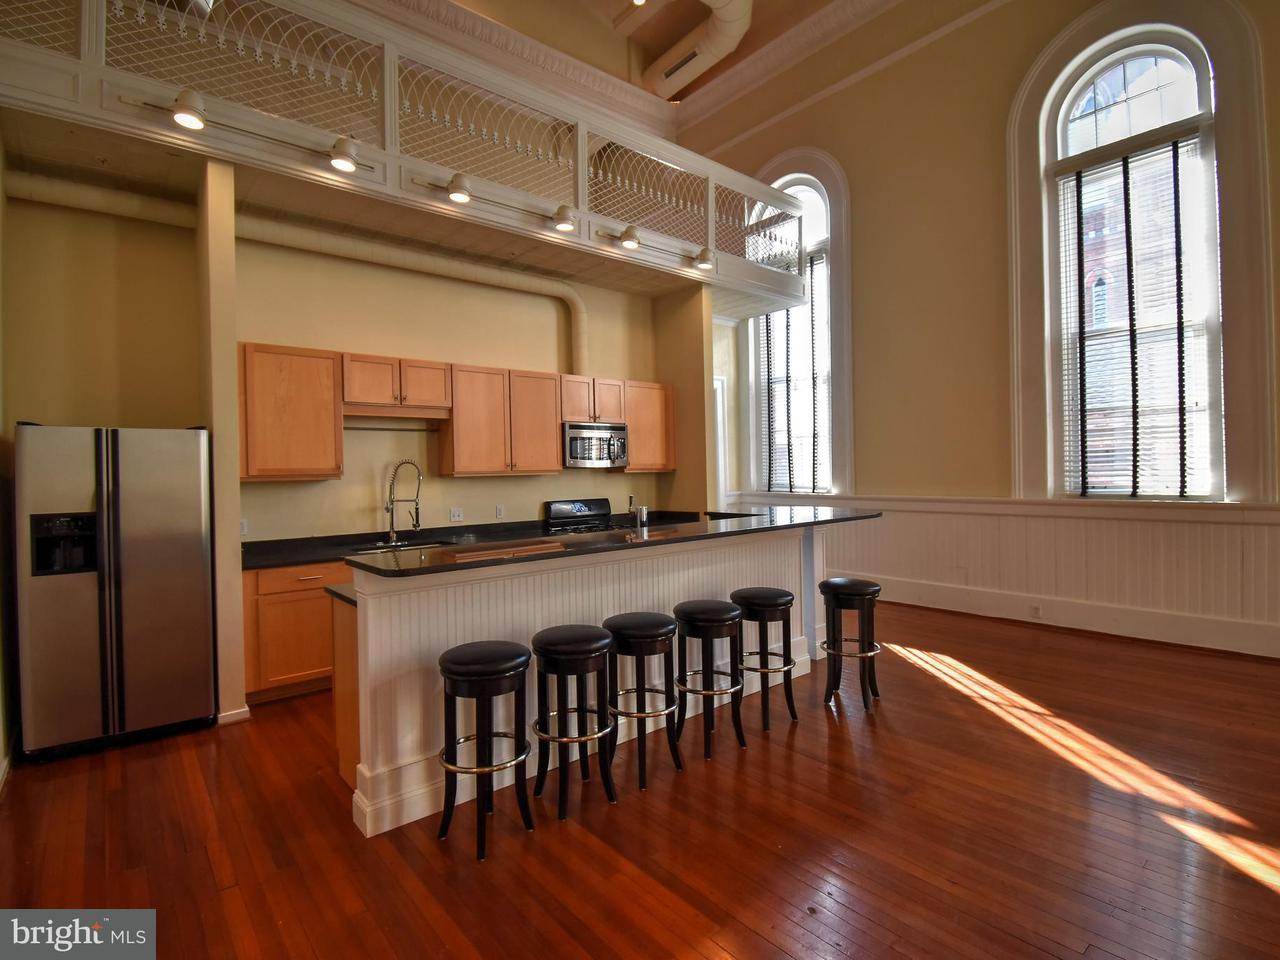 Condominium for Rent at 112 West St E #301 Baltimore, Maryland 21230 United States